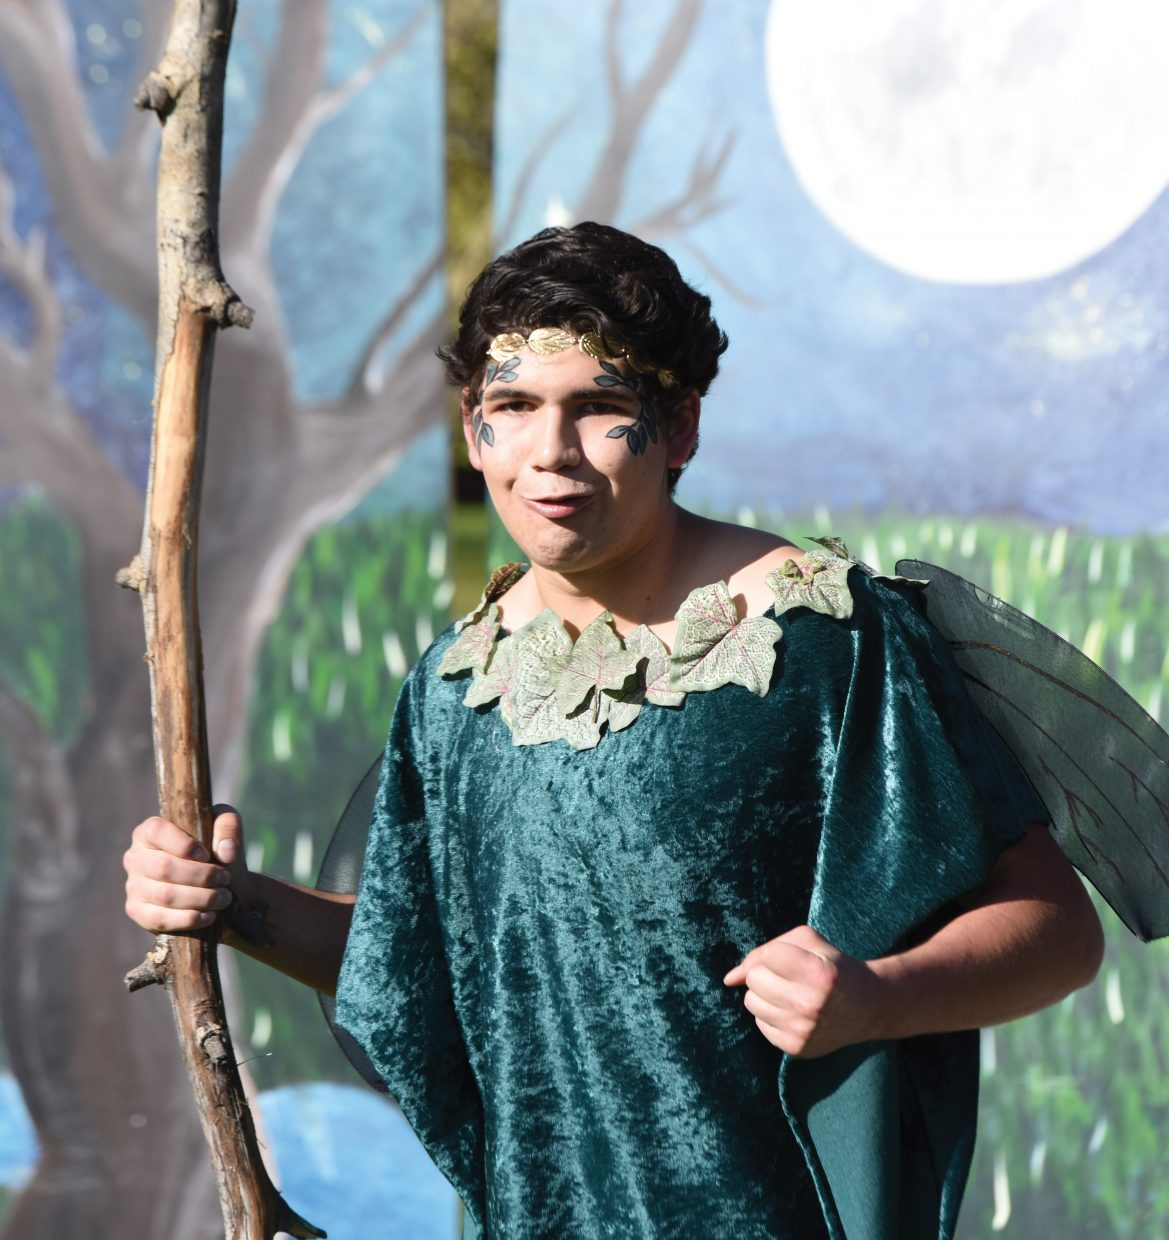 """Ernesto Saenz, who portrays Oberon in the Steamboat Springs High School's production of """"A Midsummer Night's Dream,"""" rehearses a scene on a stage set up in front of the Steamboat Springs High School. The shows are scheduled for 5 p.m. Friday and Saturday. There will also be a show at noon Saturday."""